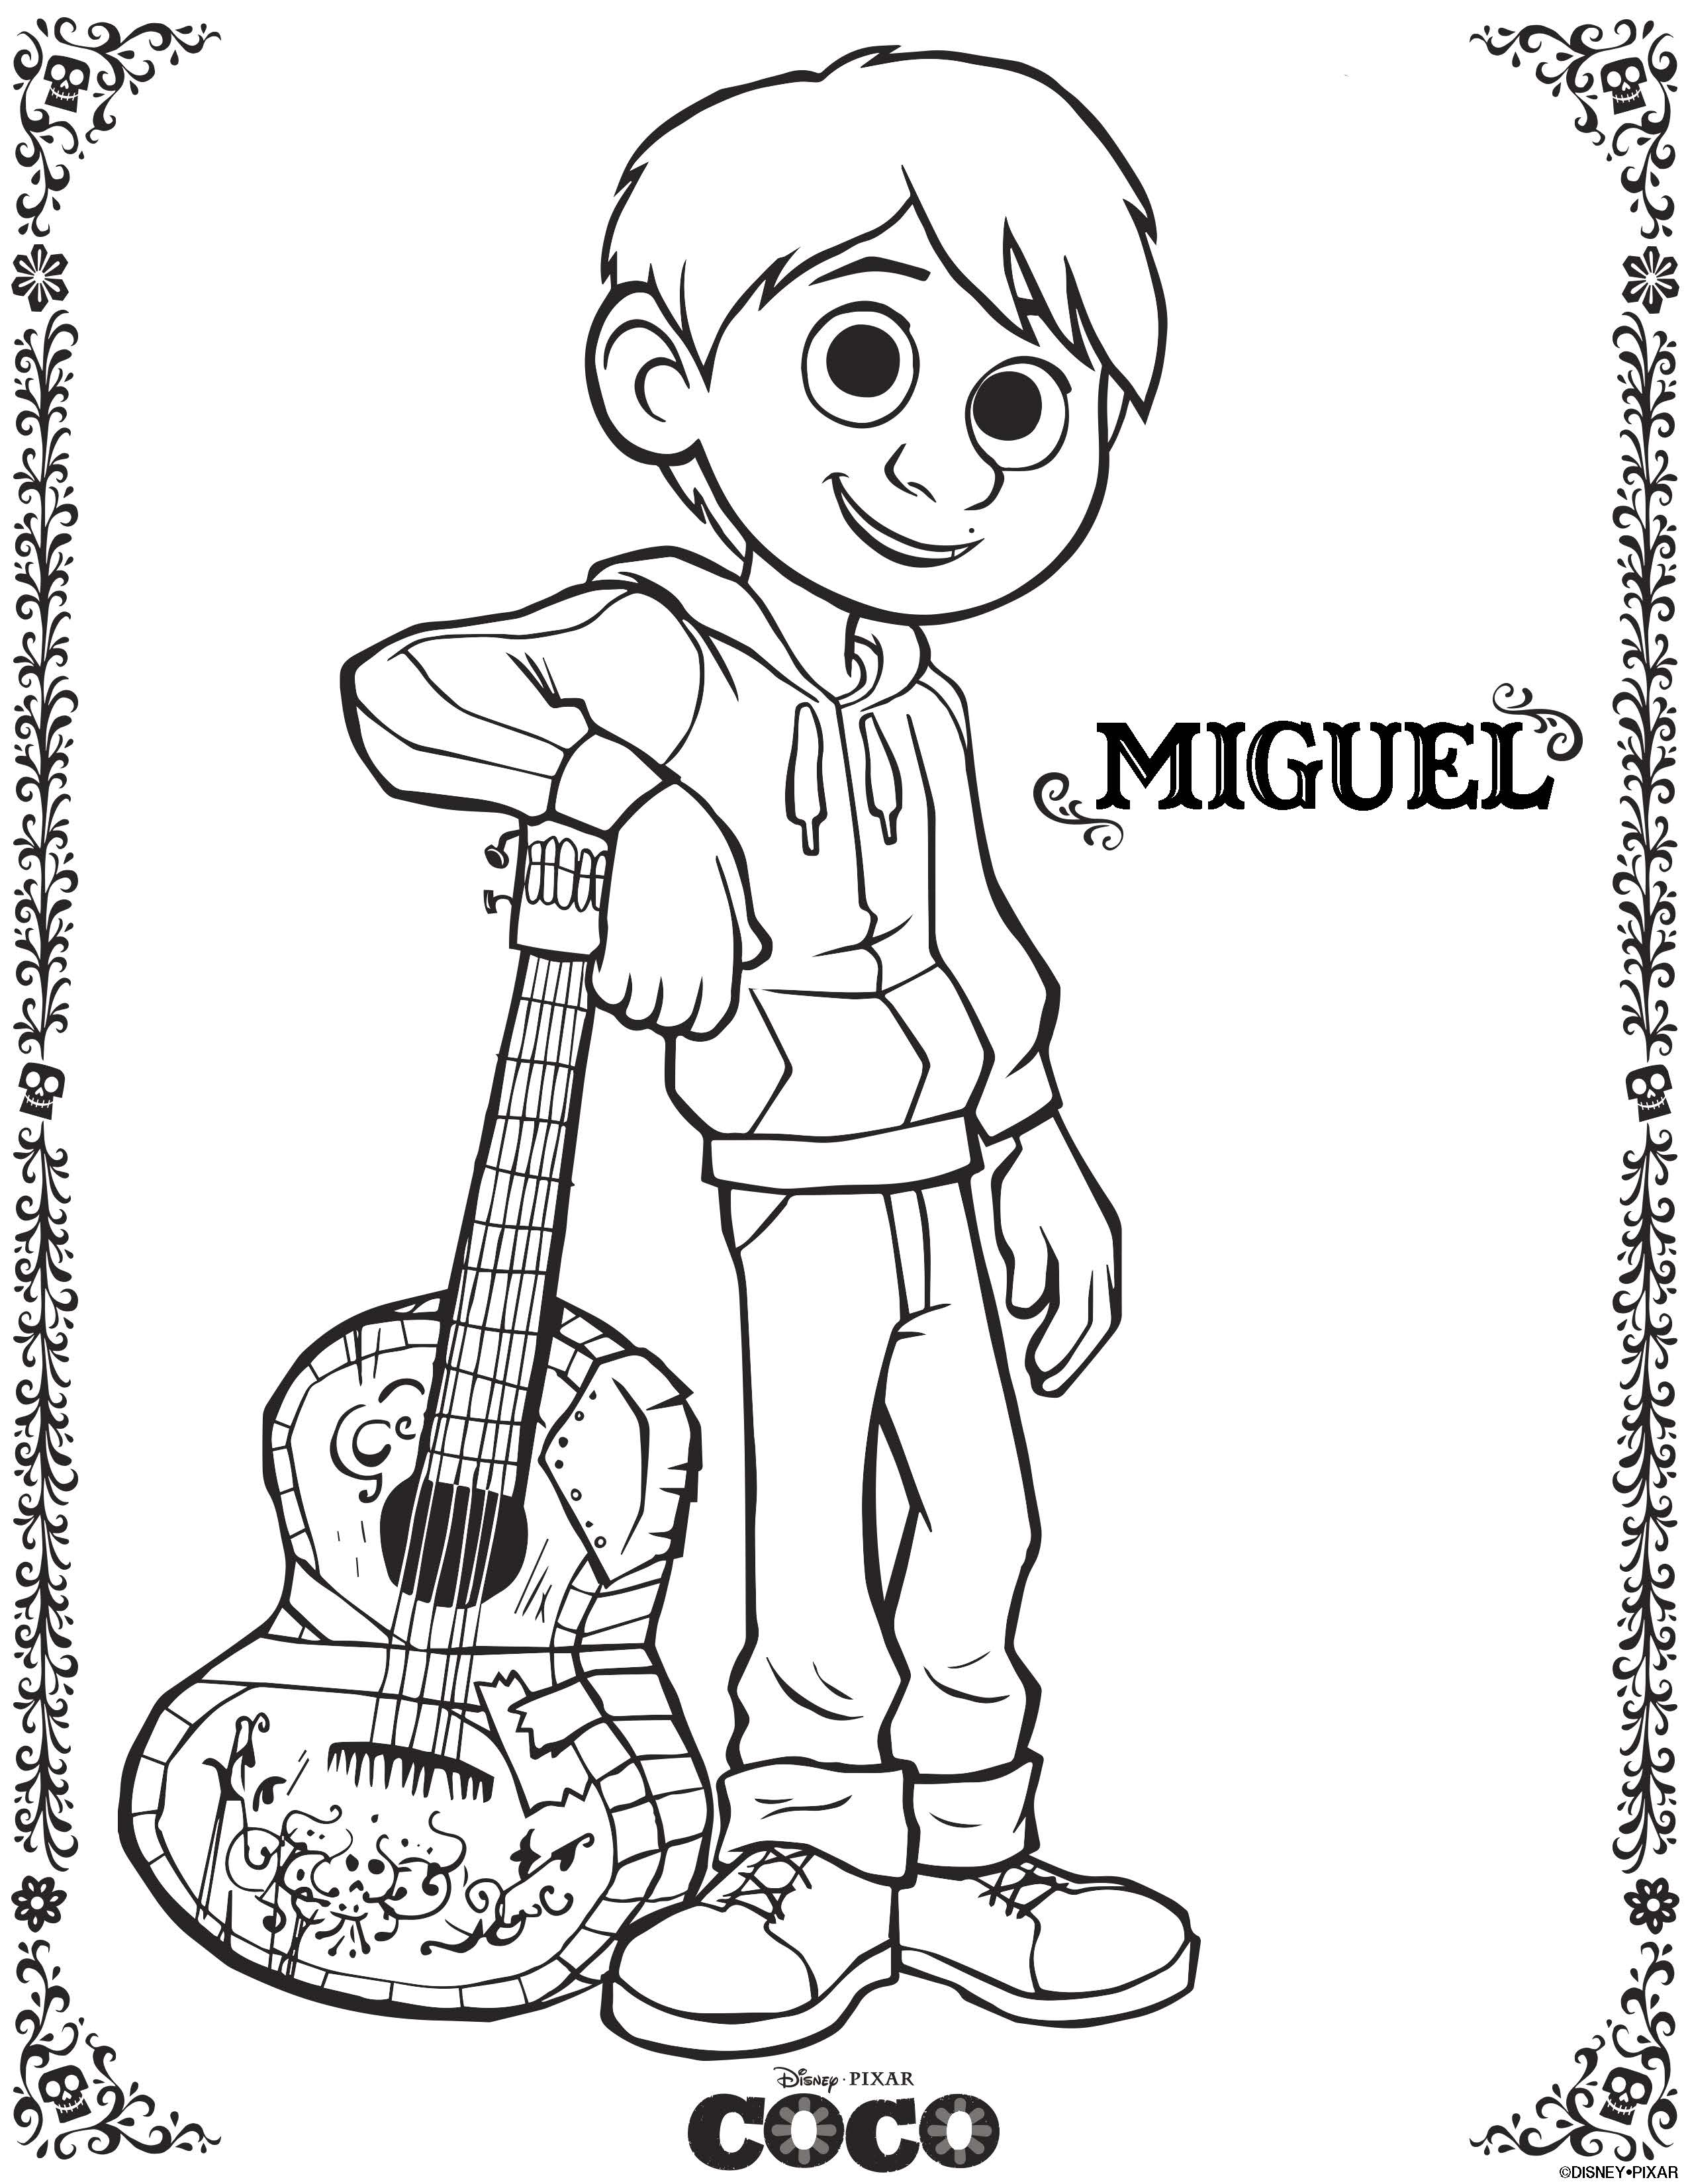 disney pixar u0027s coco preview with coloring pages and a family fun